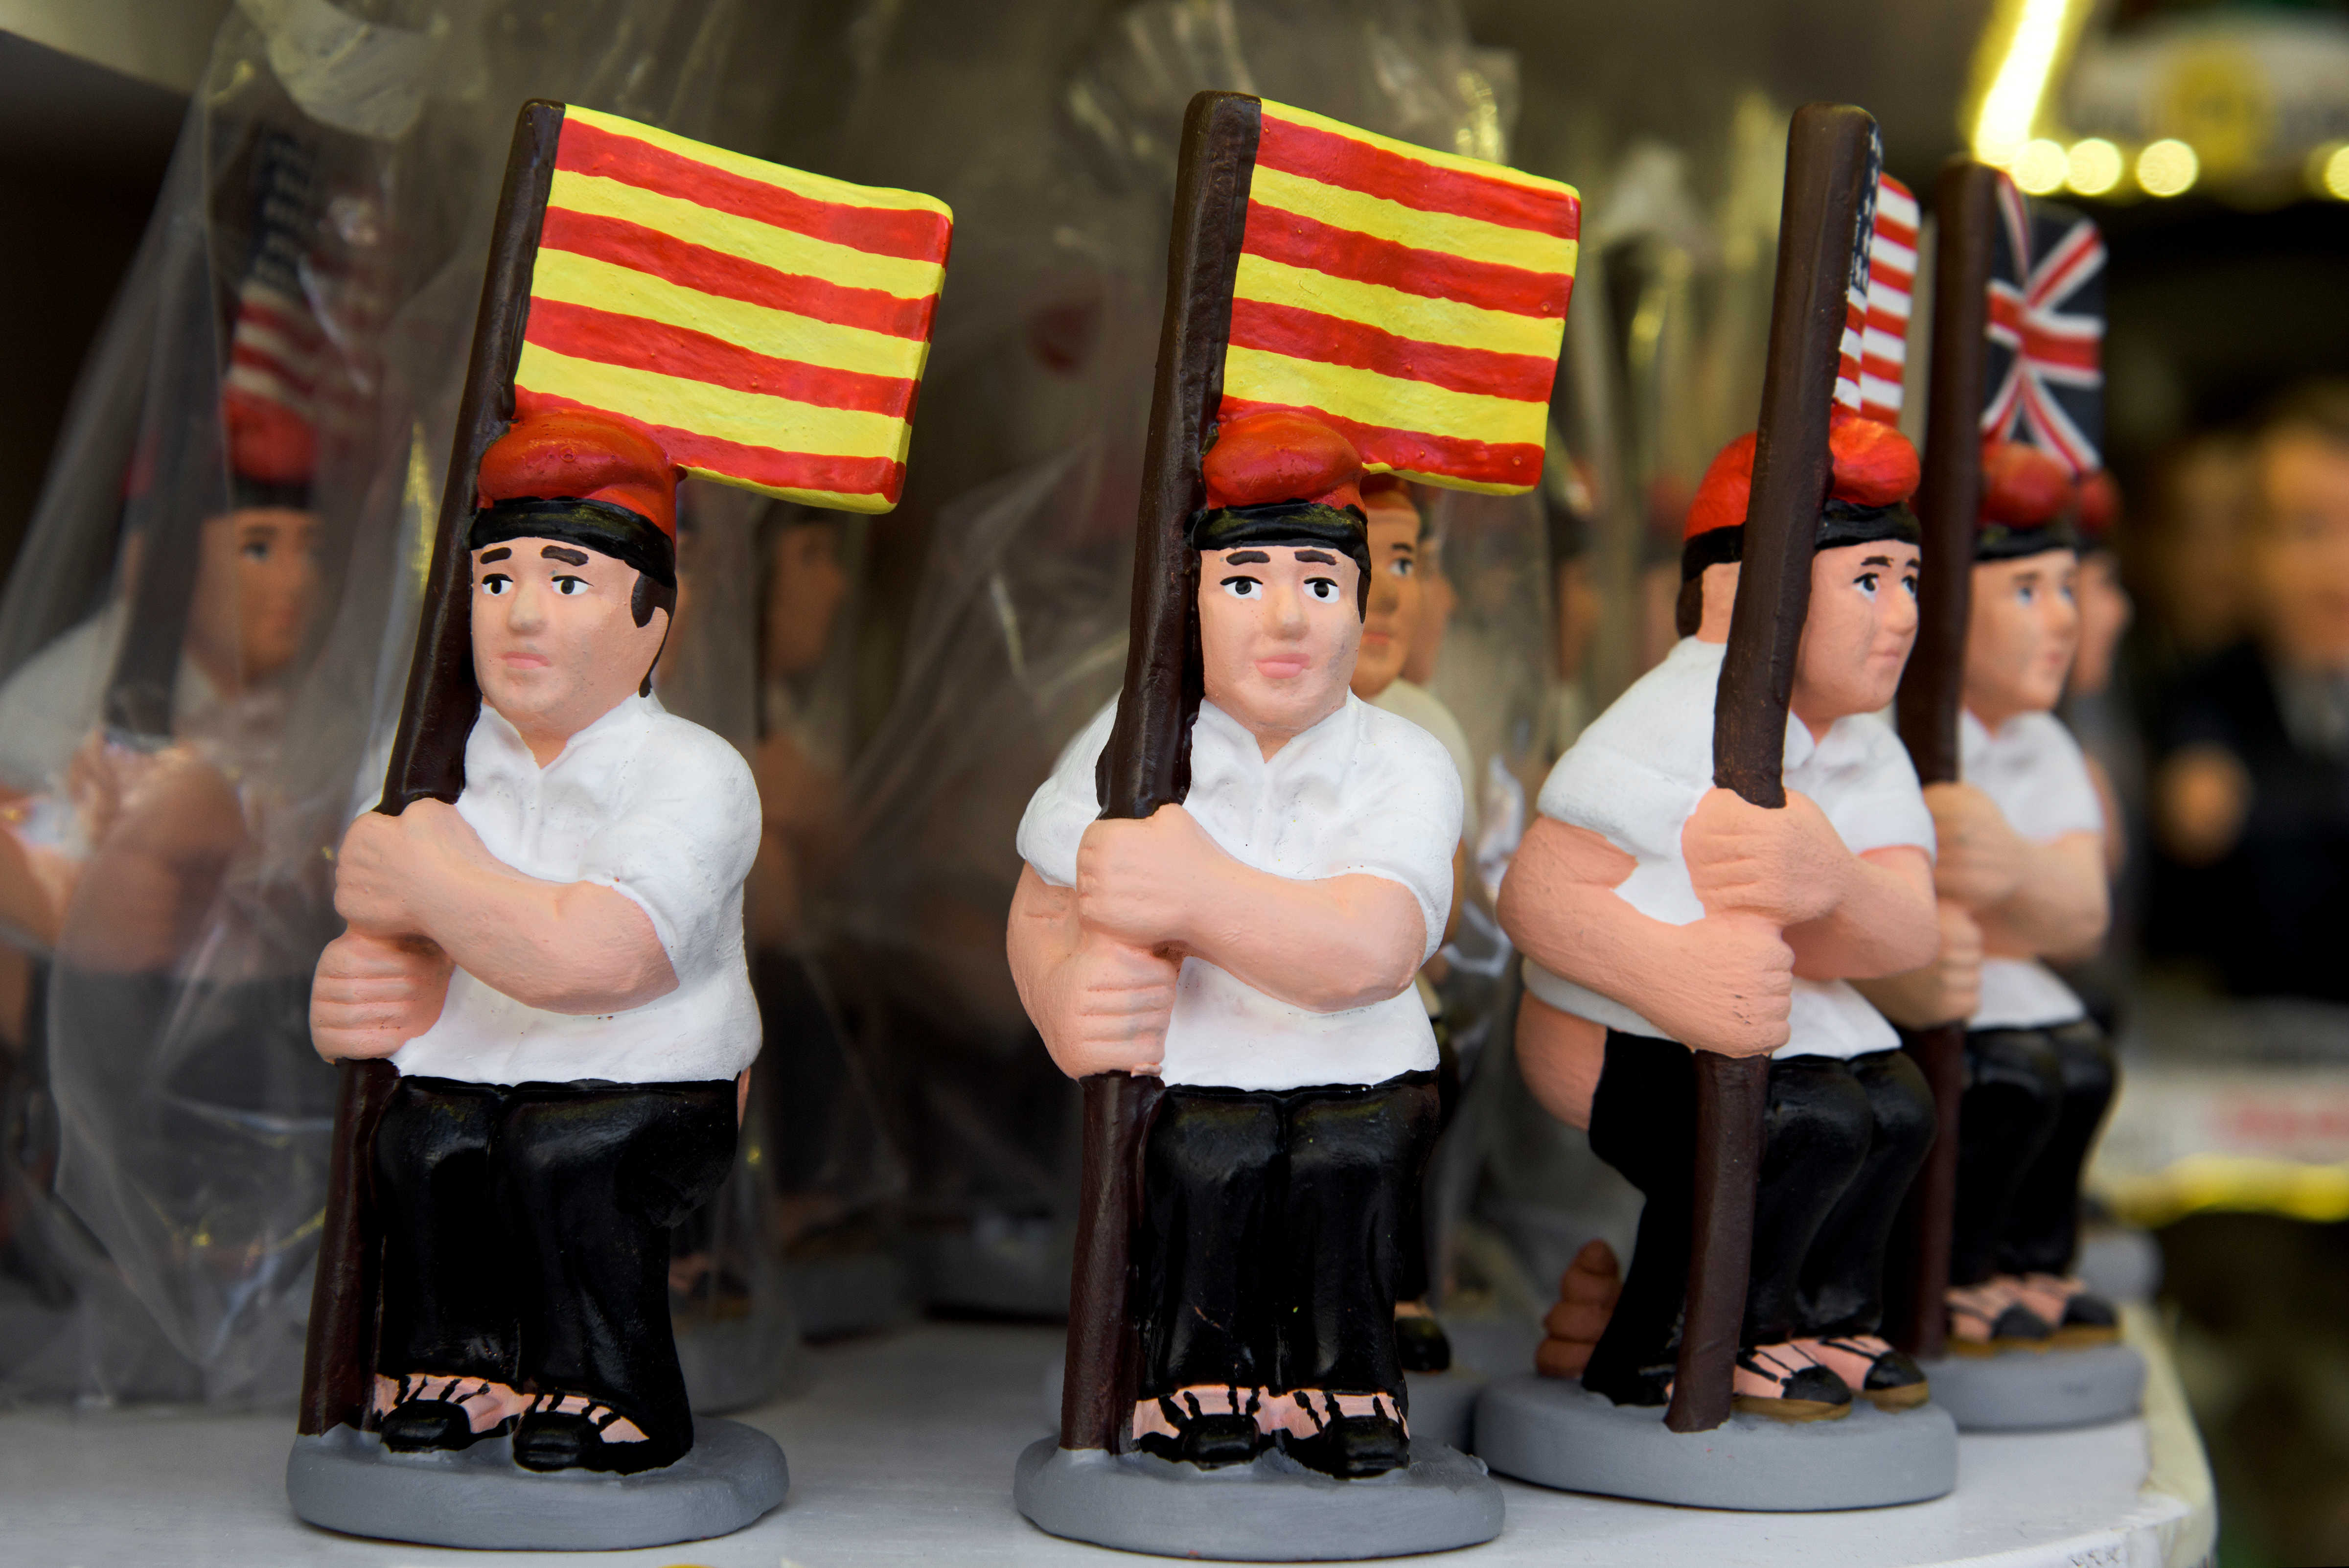 El Caganer figurines, Alternative Christmas Traditions